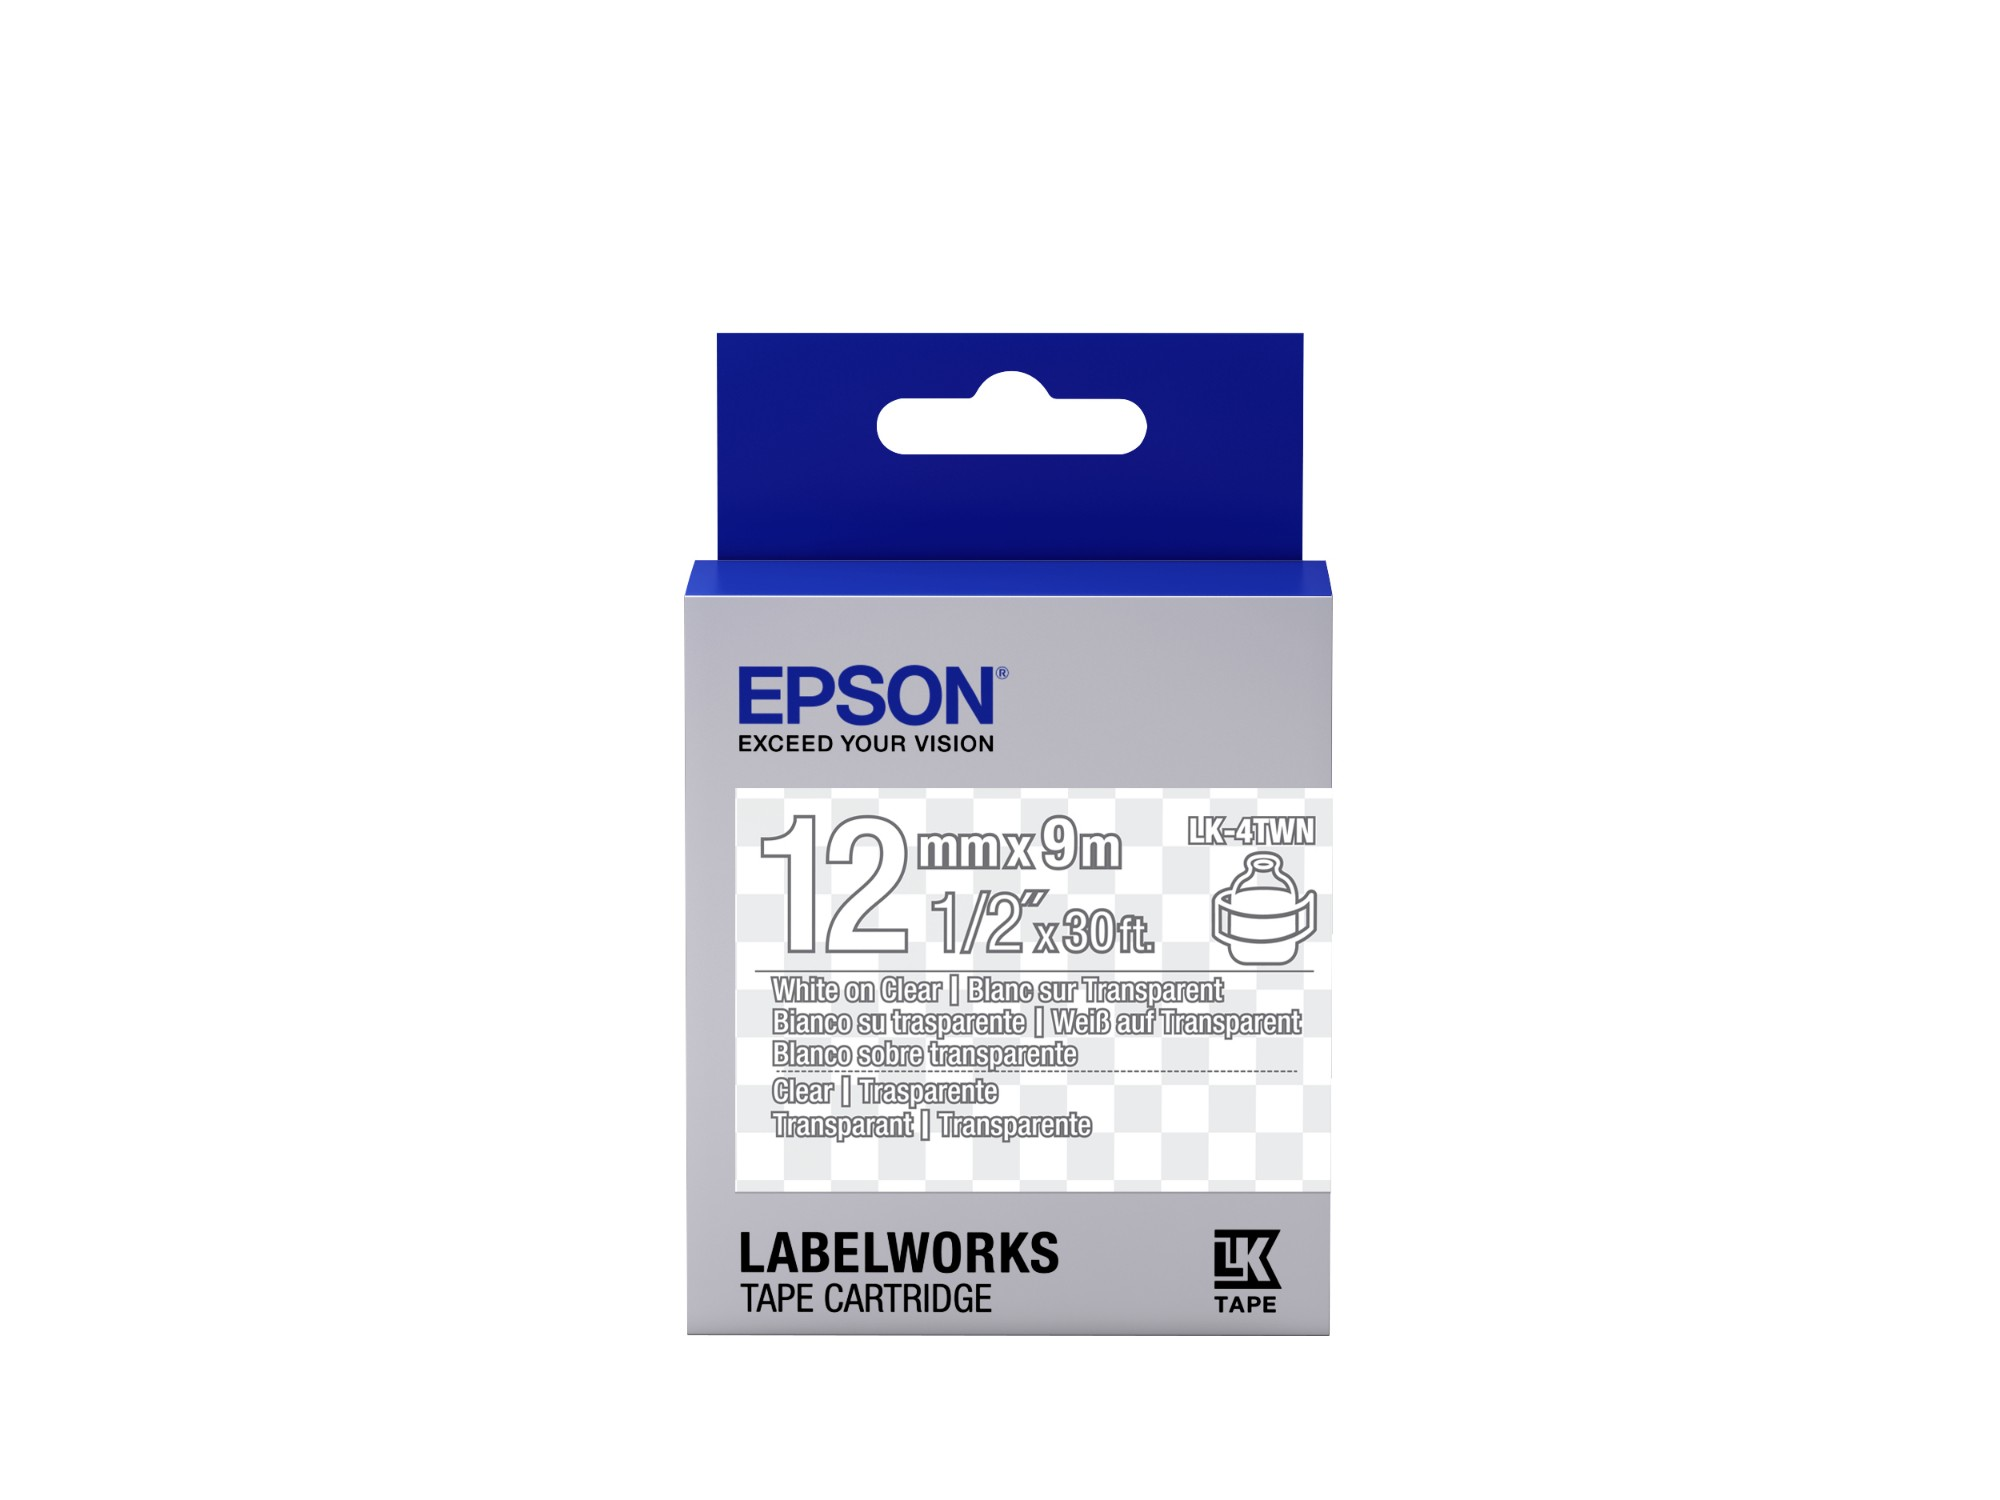 Epson Transparent Tape - LK-4TWN Clear White/Clear 12/9